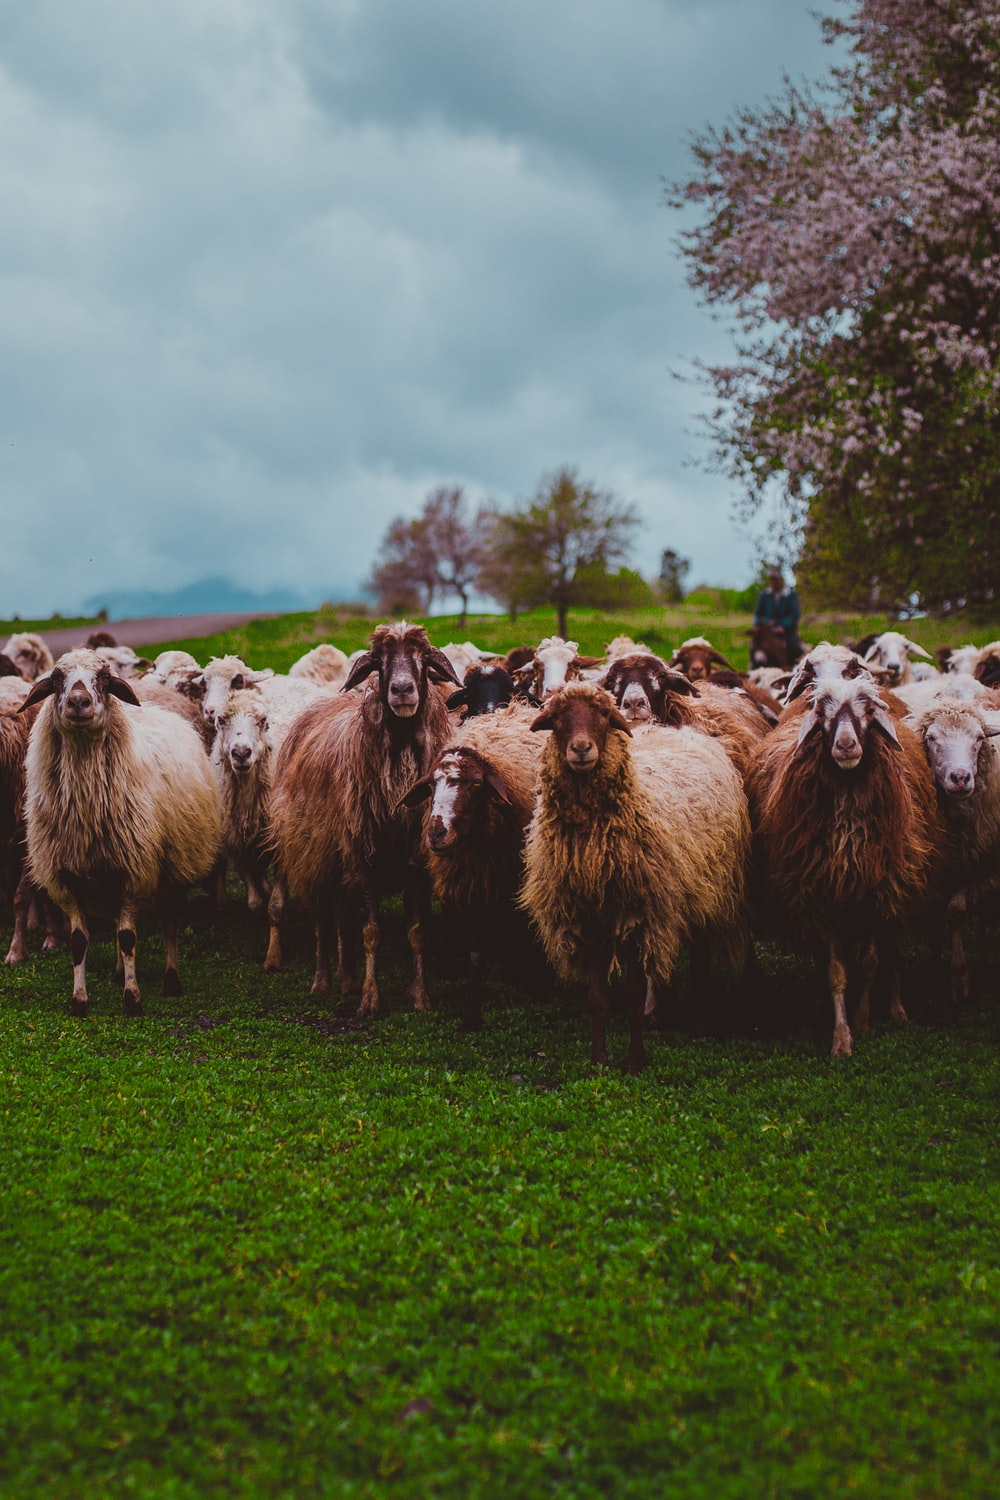 500 Farm Animal Pictures Download Free Images On Unsplash